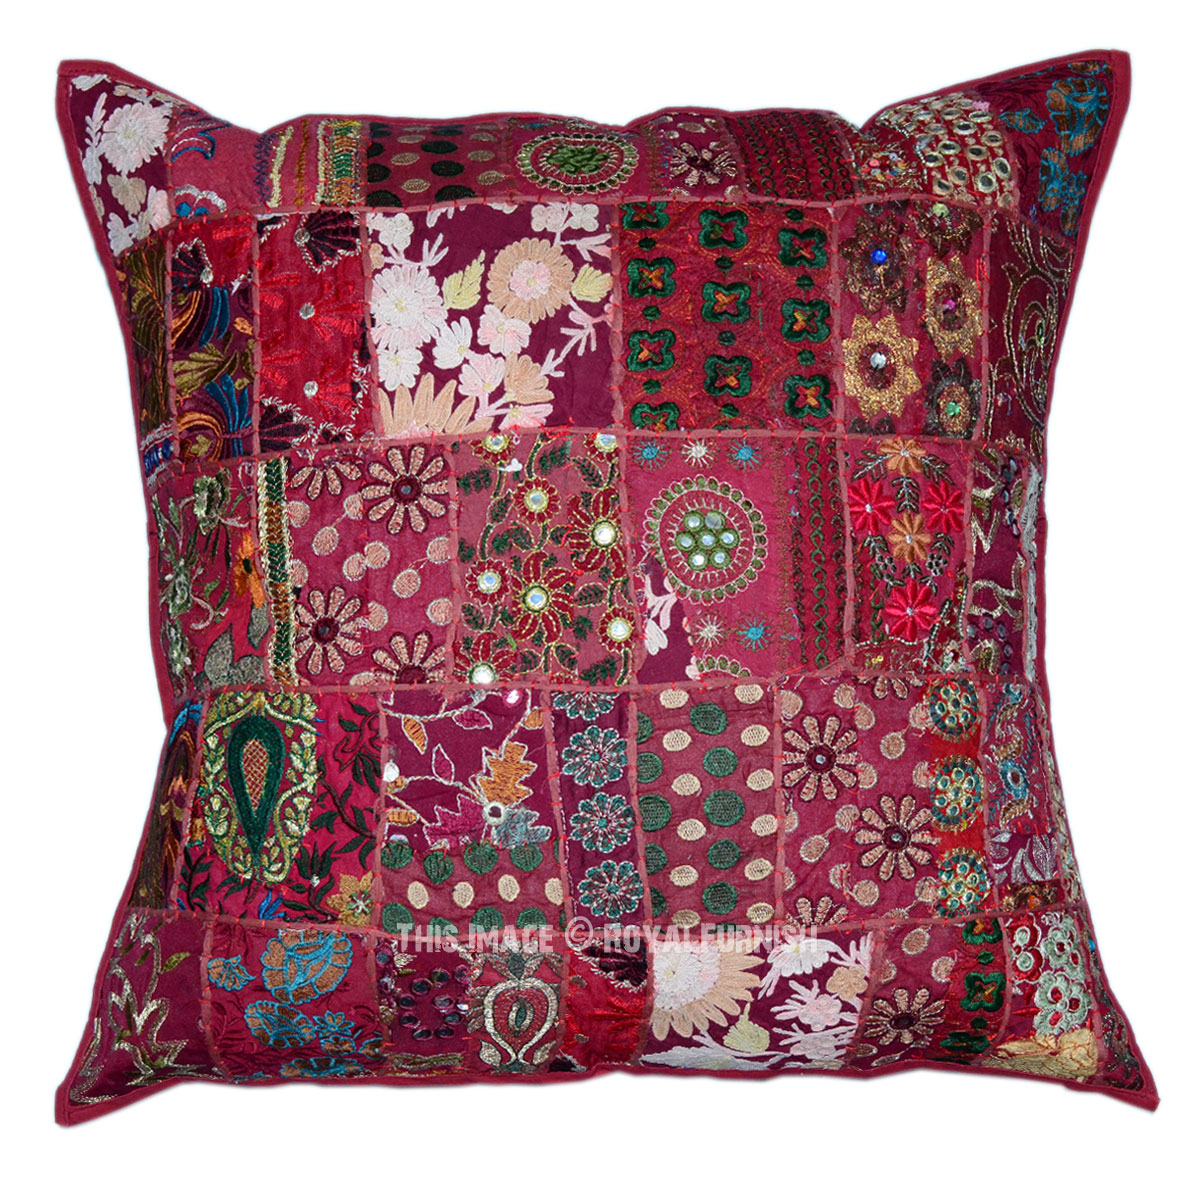 Oversized Decorative Pillow : Red Oversized Vintage Bohemian Patchwork Square Indian Pillow Cushion Cover - RoyalFurnish.com